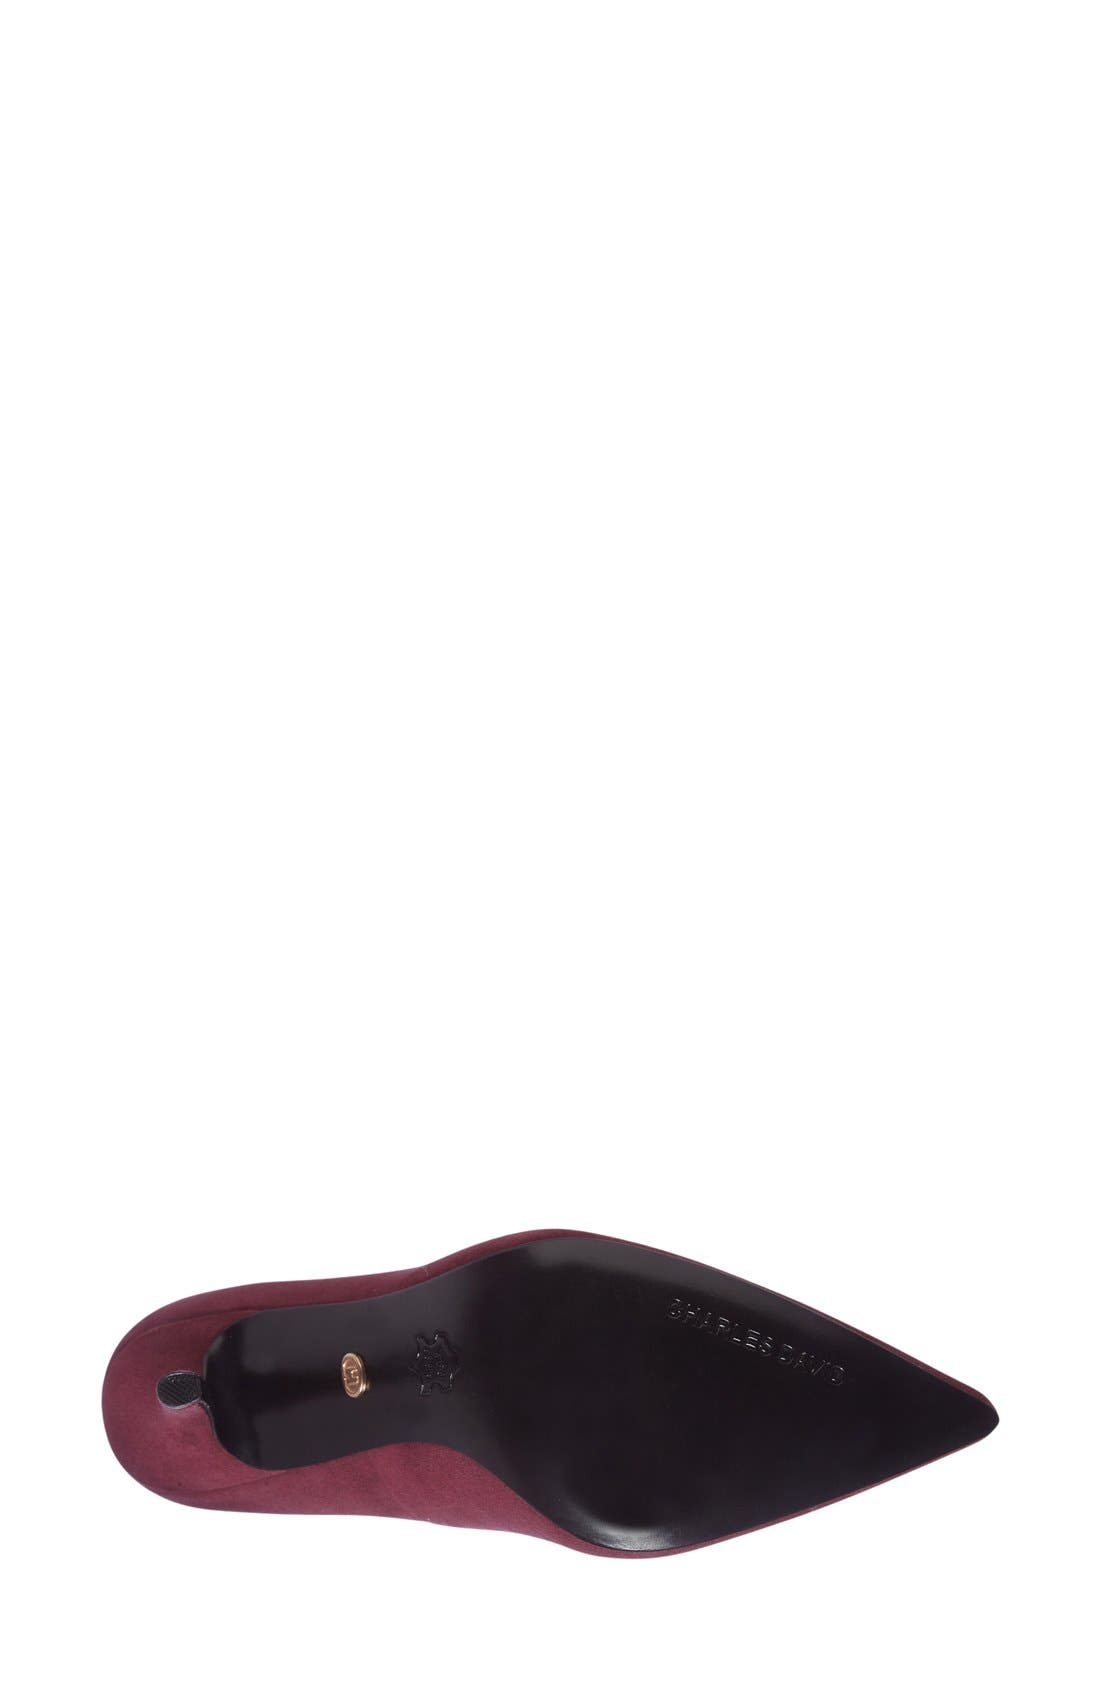 Charles David 'Sway II' Patent Leather Pump,                             Alternate thumbnail 4, color,                             Burgundy Suede